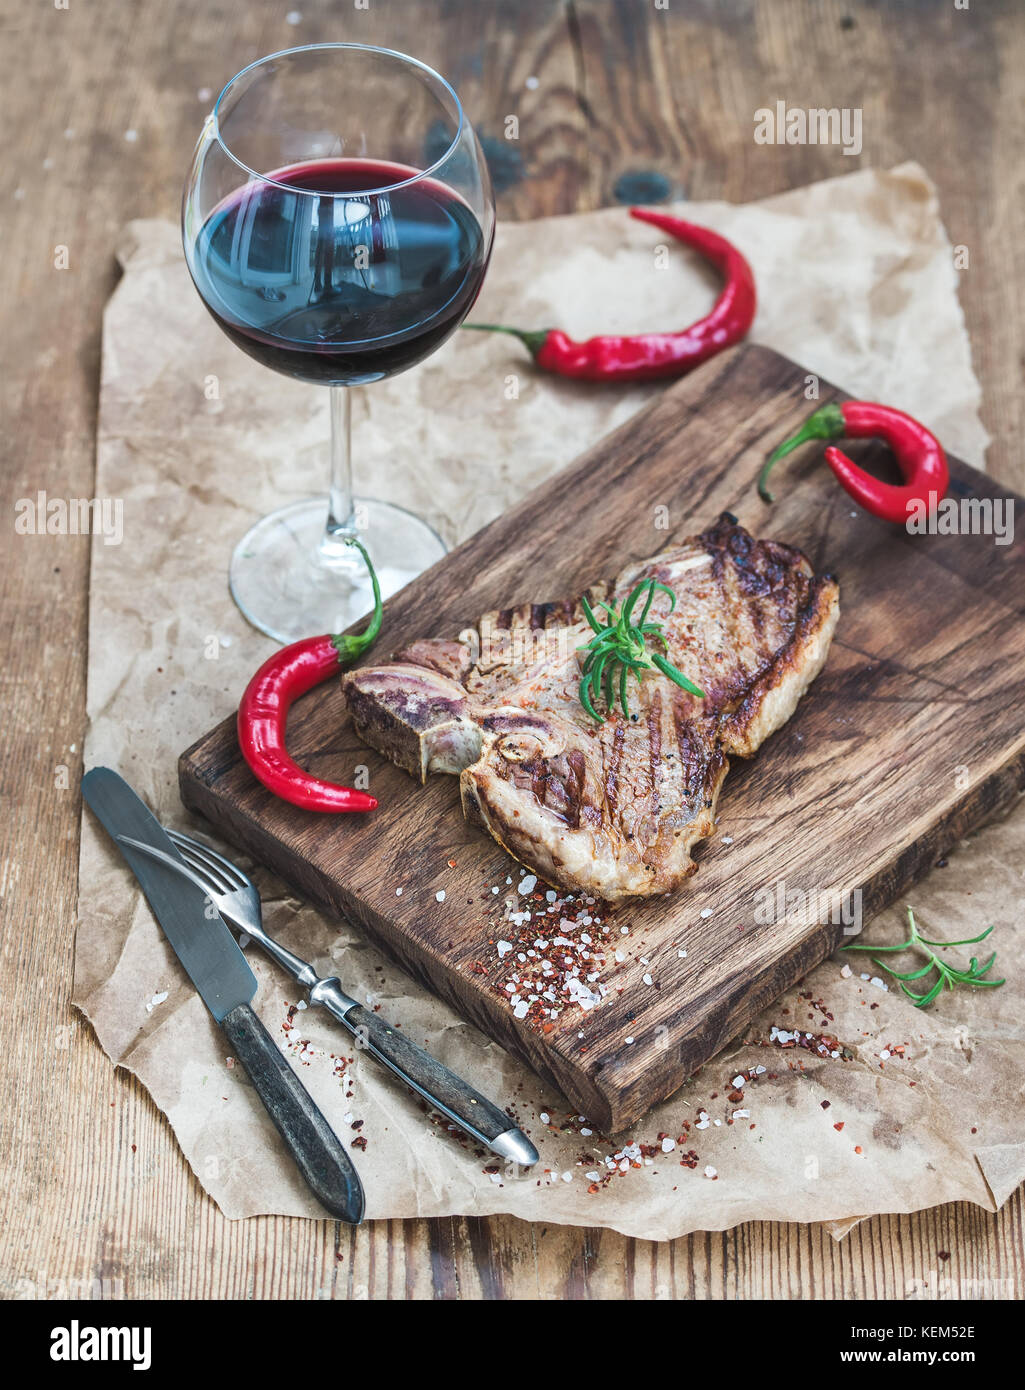 Cooked meat t-bone steak on serving board with roasted tomatoes Stock Photo